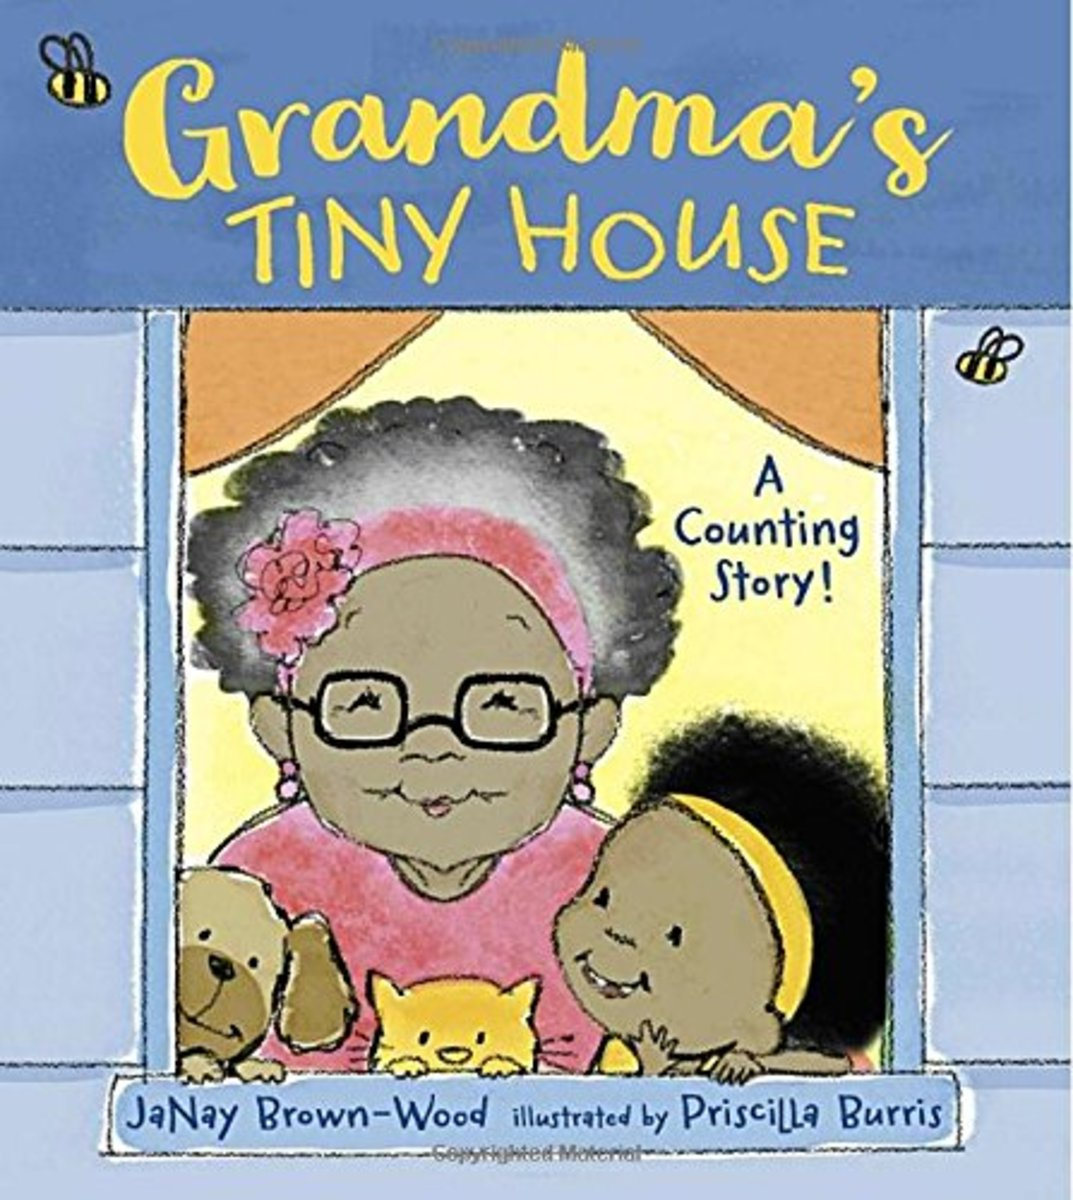 Grandma's Tiny House: A Counting Story!by JaNay Brown-Wood